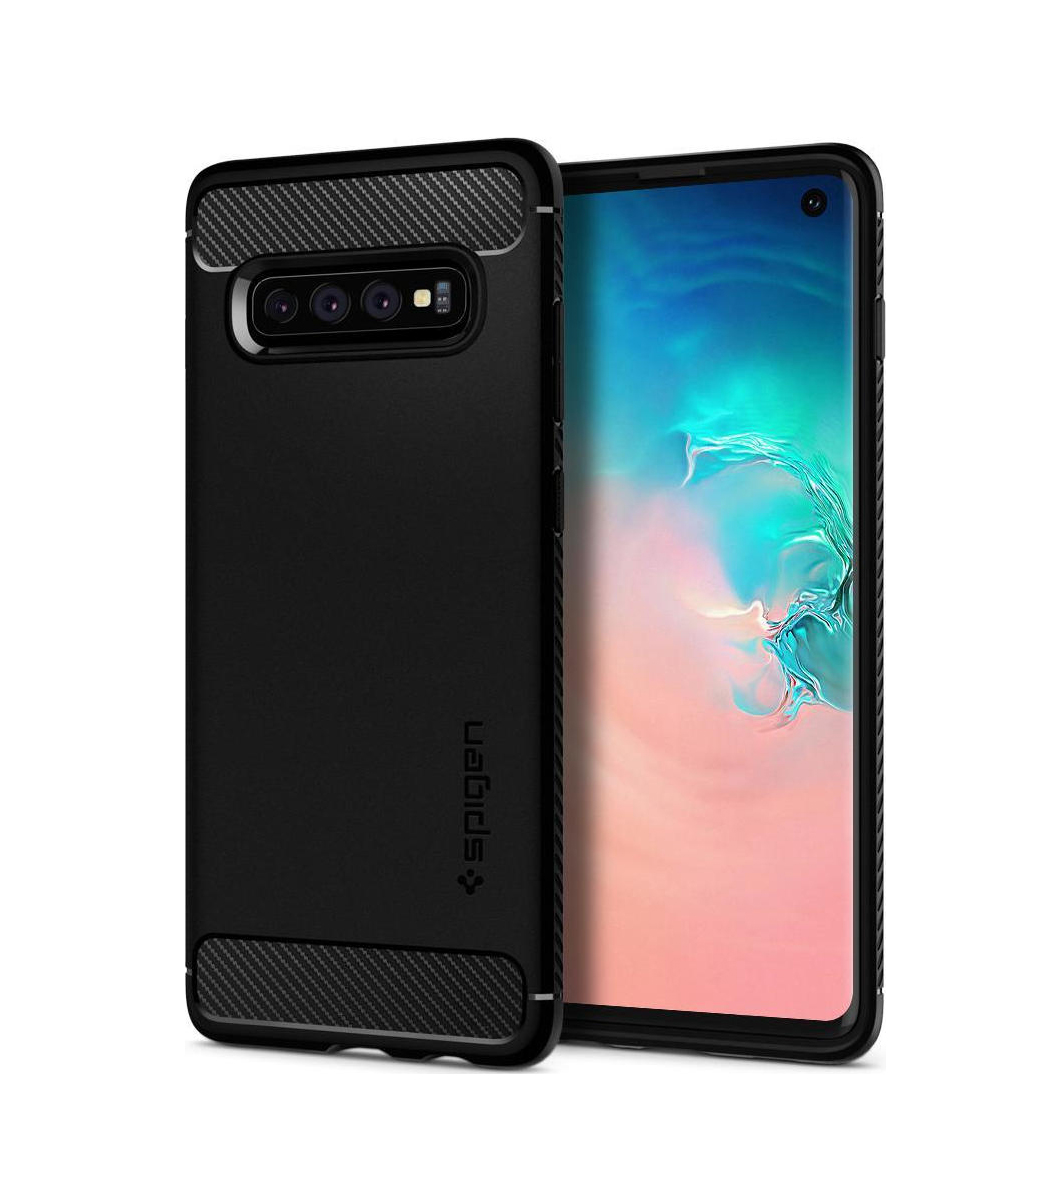 Θήκη Spigen Rugged Armor για Samsung Galaxy S10 G973 Matte Black 605CS25800